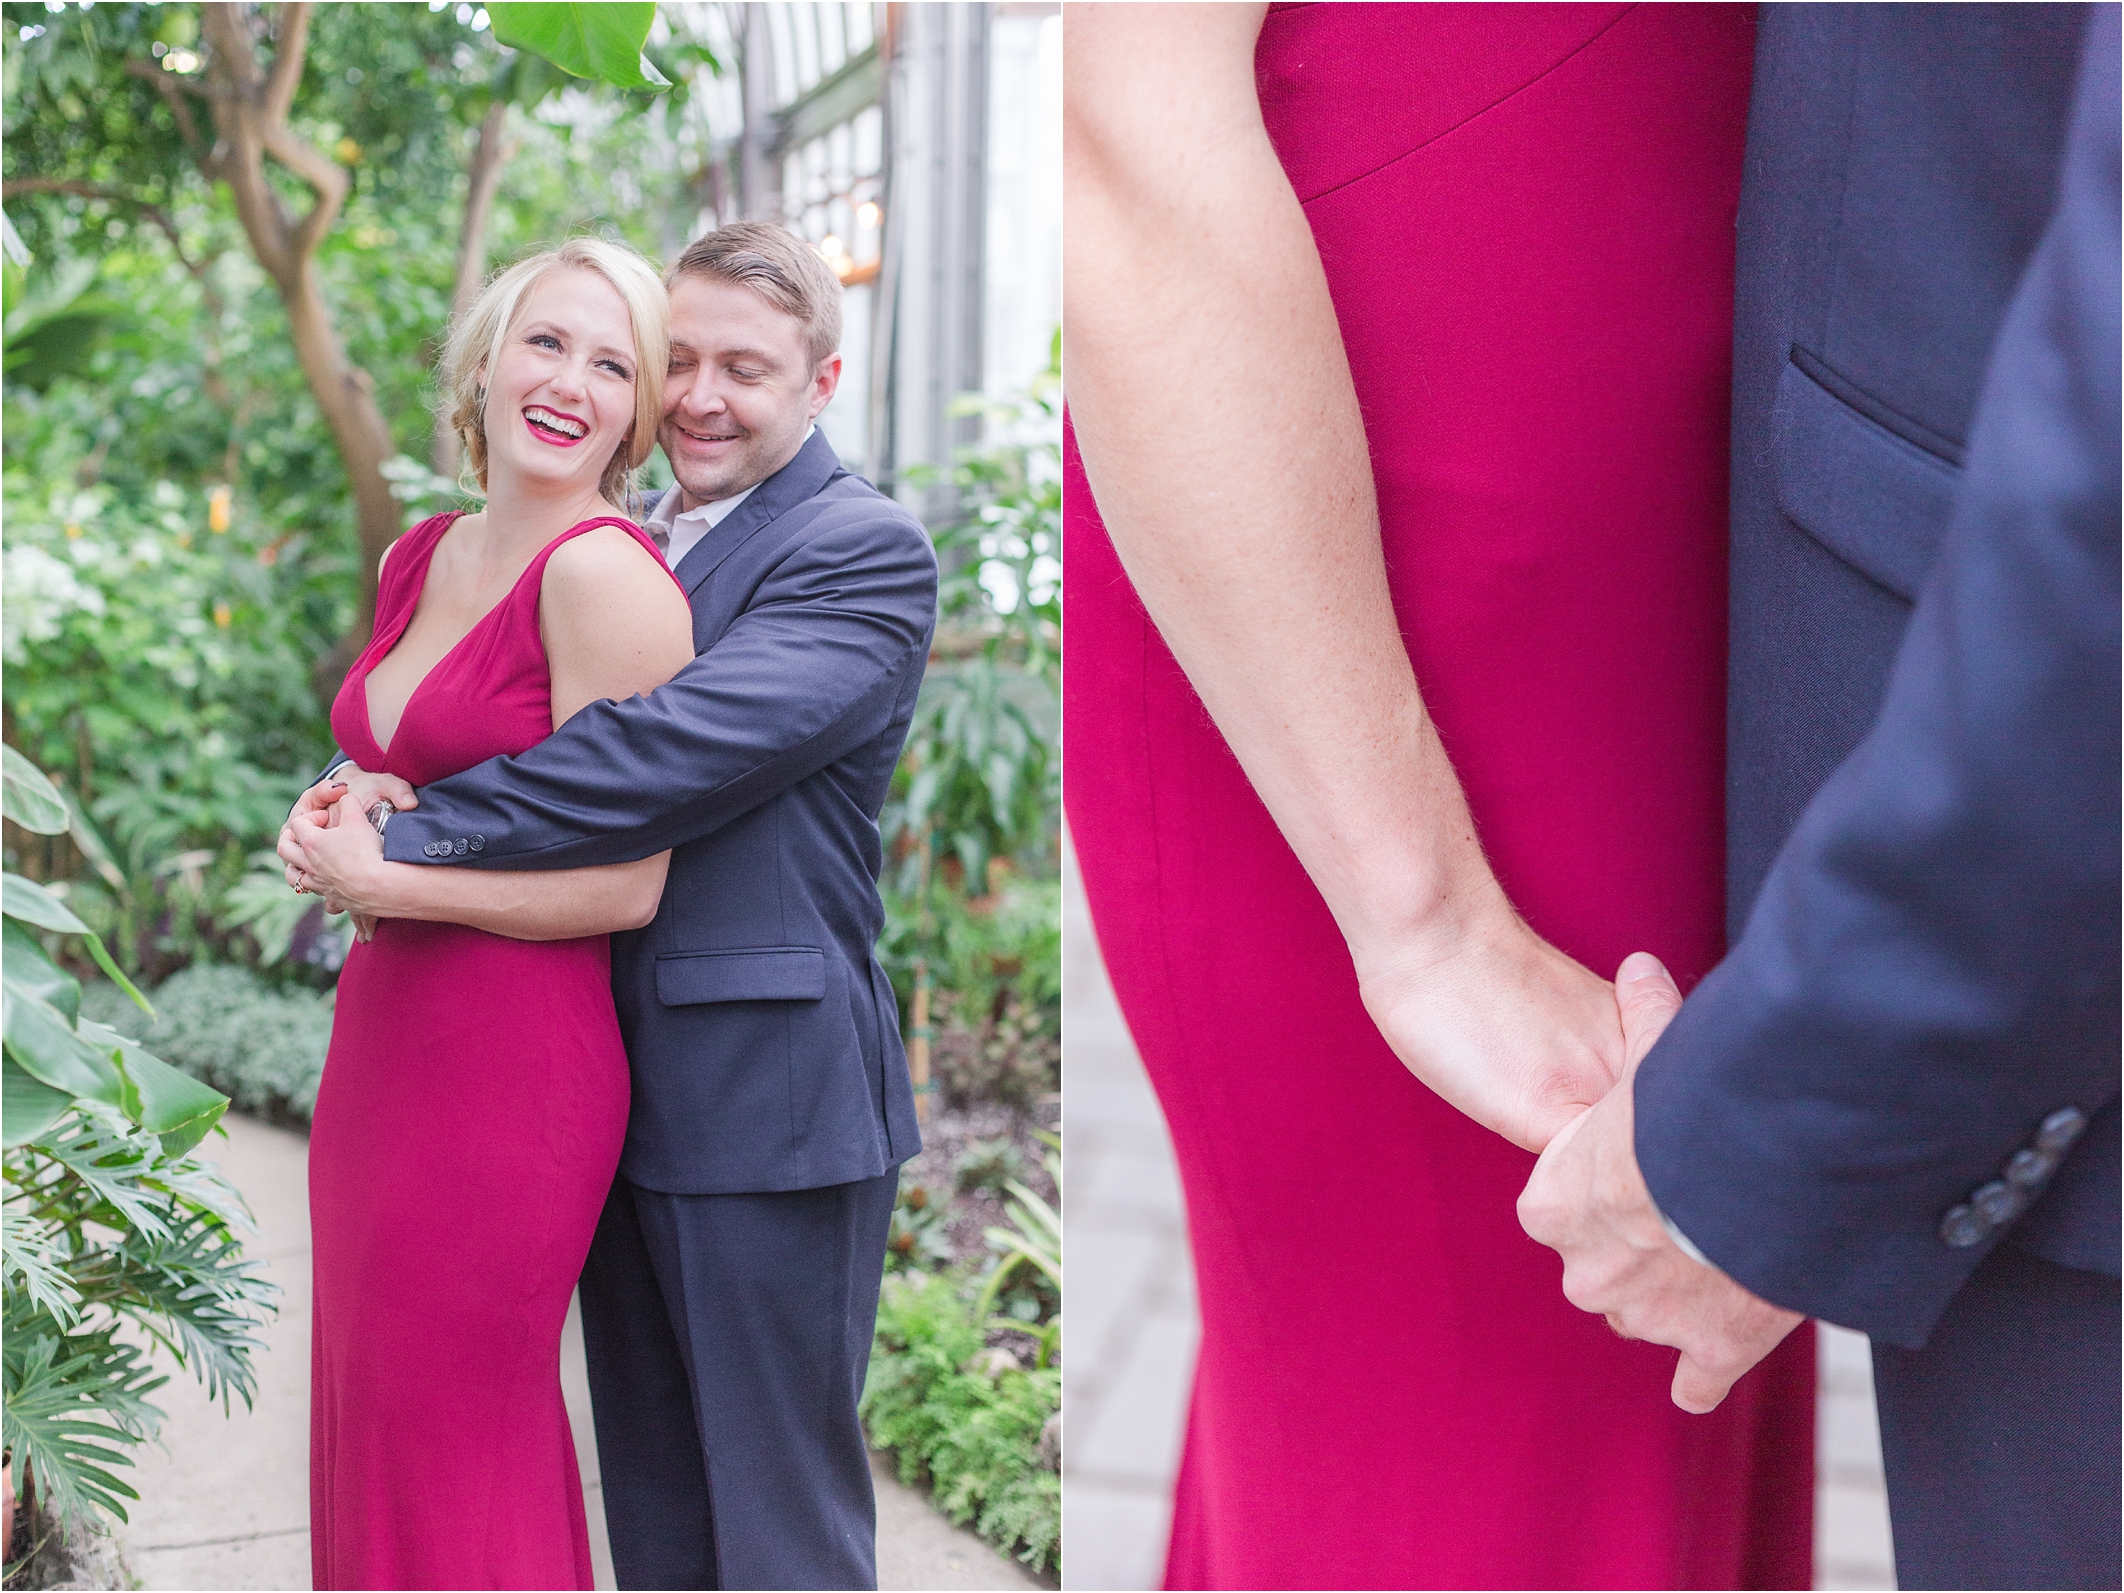 elegant-classic-belle-isle-conservatory-engagement-photos-in-detroit-mi-by-courtney-carolyn-photography_0012.jpg